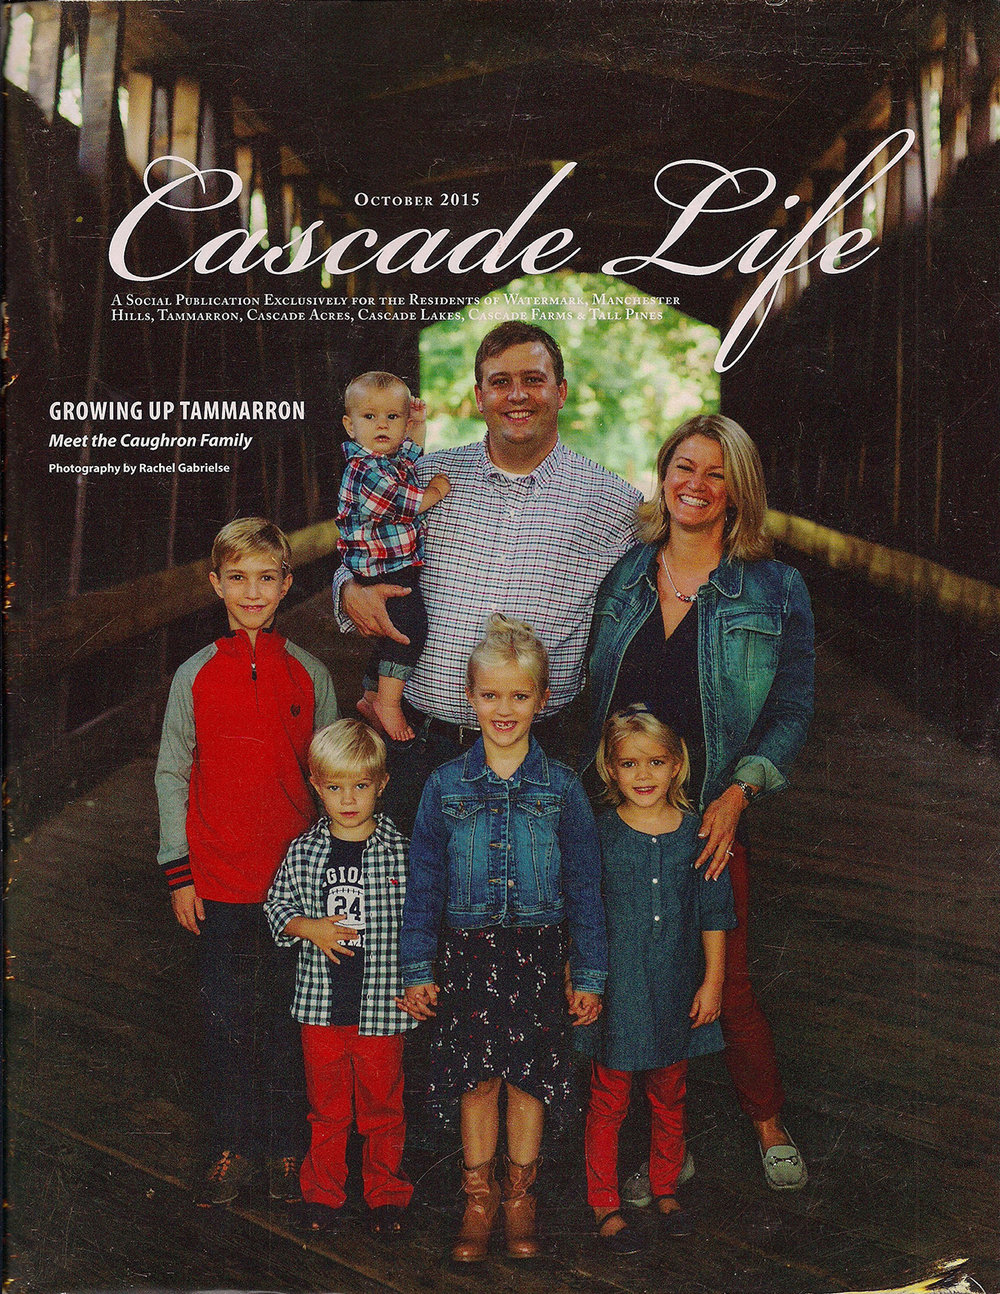 Oct2015-CascadeLife-cover.jpg